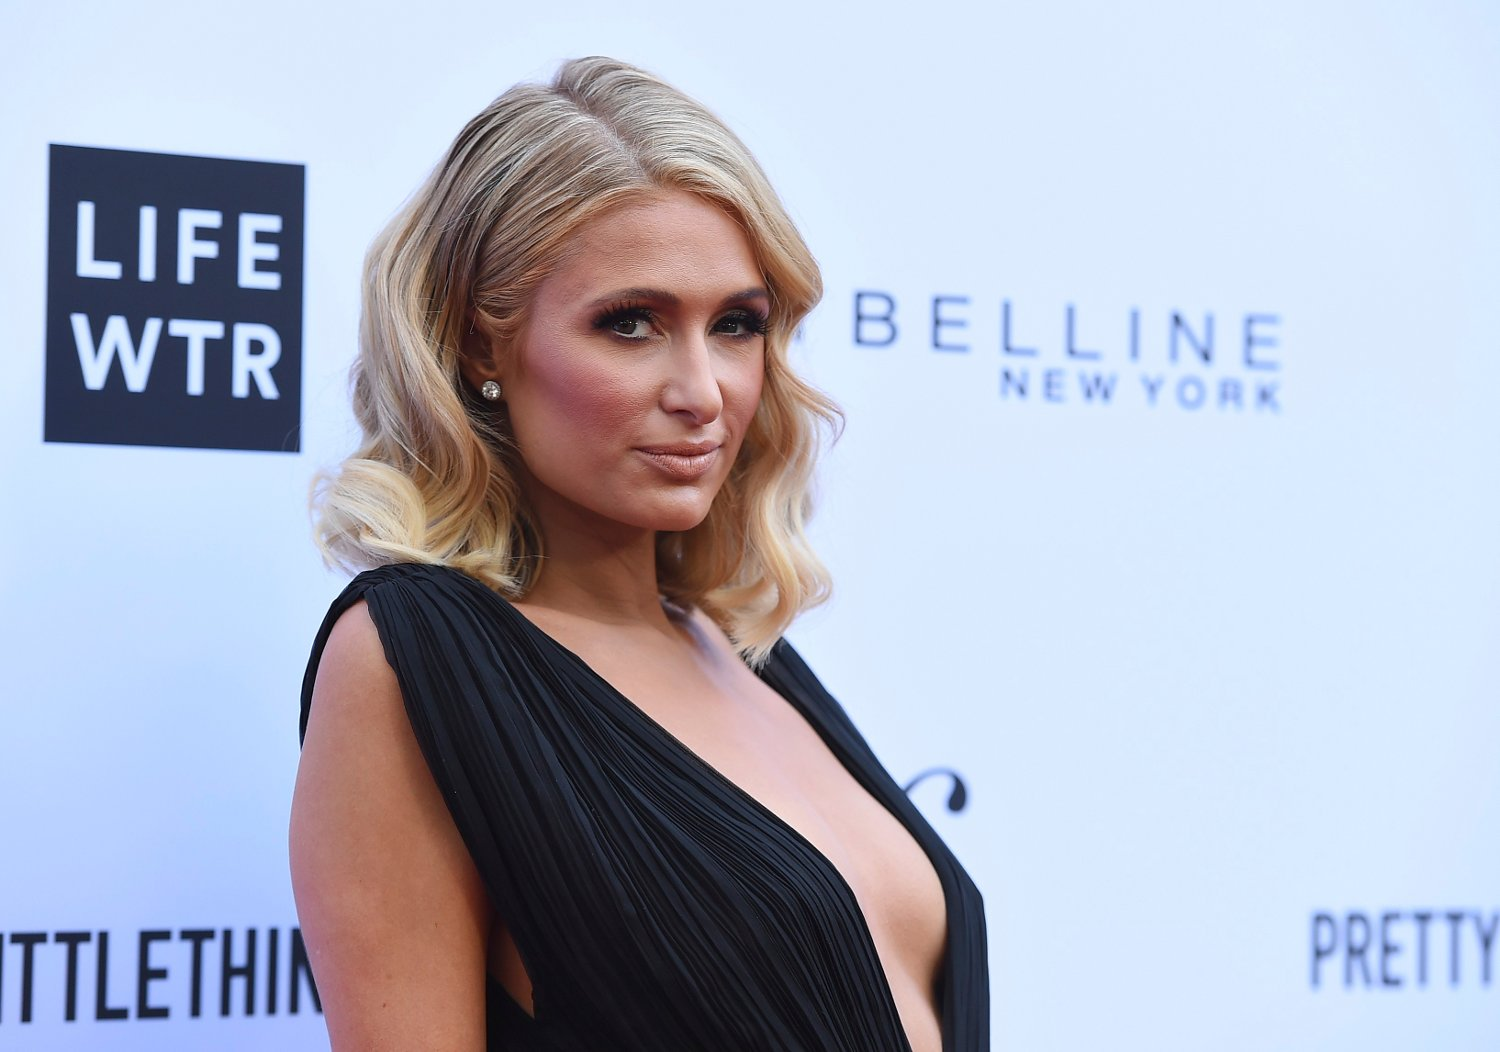 Paris Hilton Paris Hilton arrives at the Daily Front Row's Fashion Los Angeles Awards at the Beverly Hills Hotel on Sunday, April 8, 2018, in Beverly Hills, Calif.